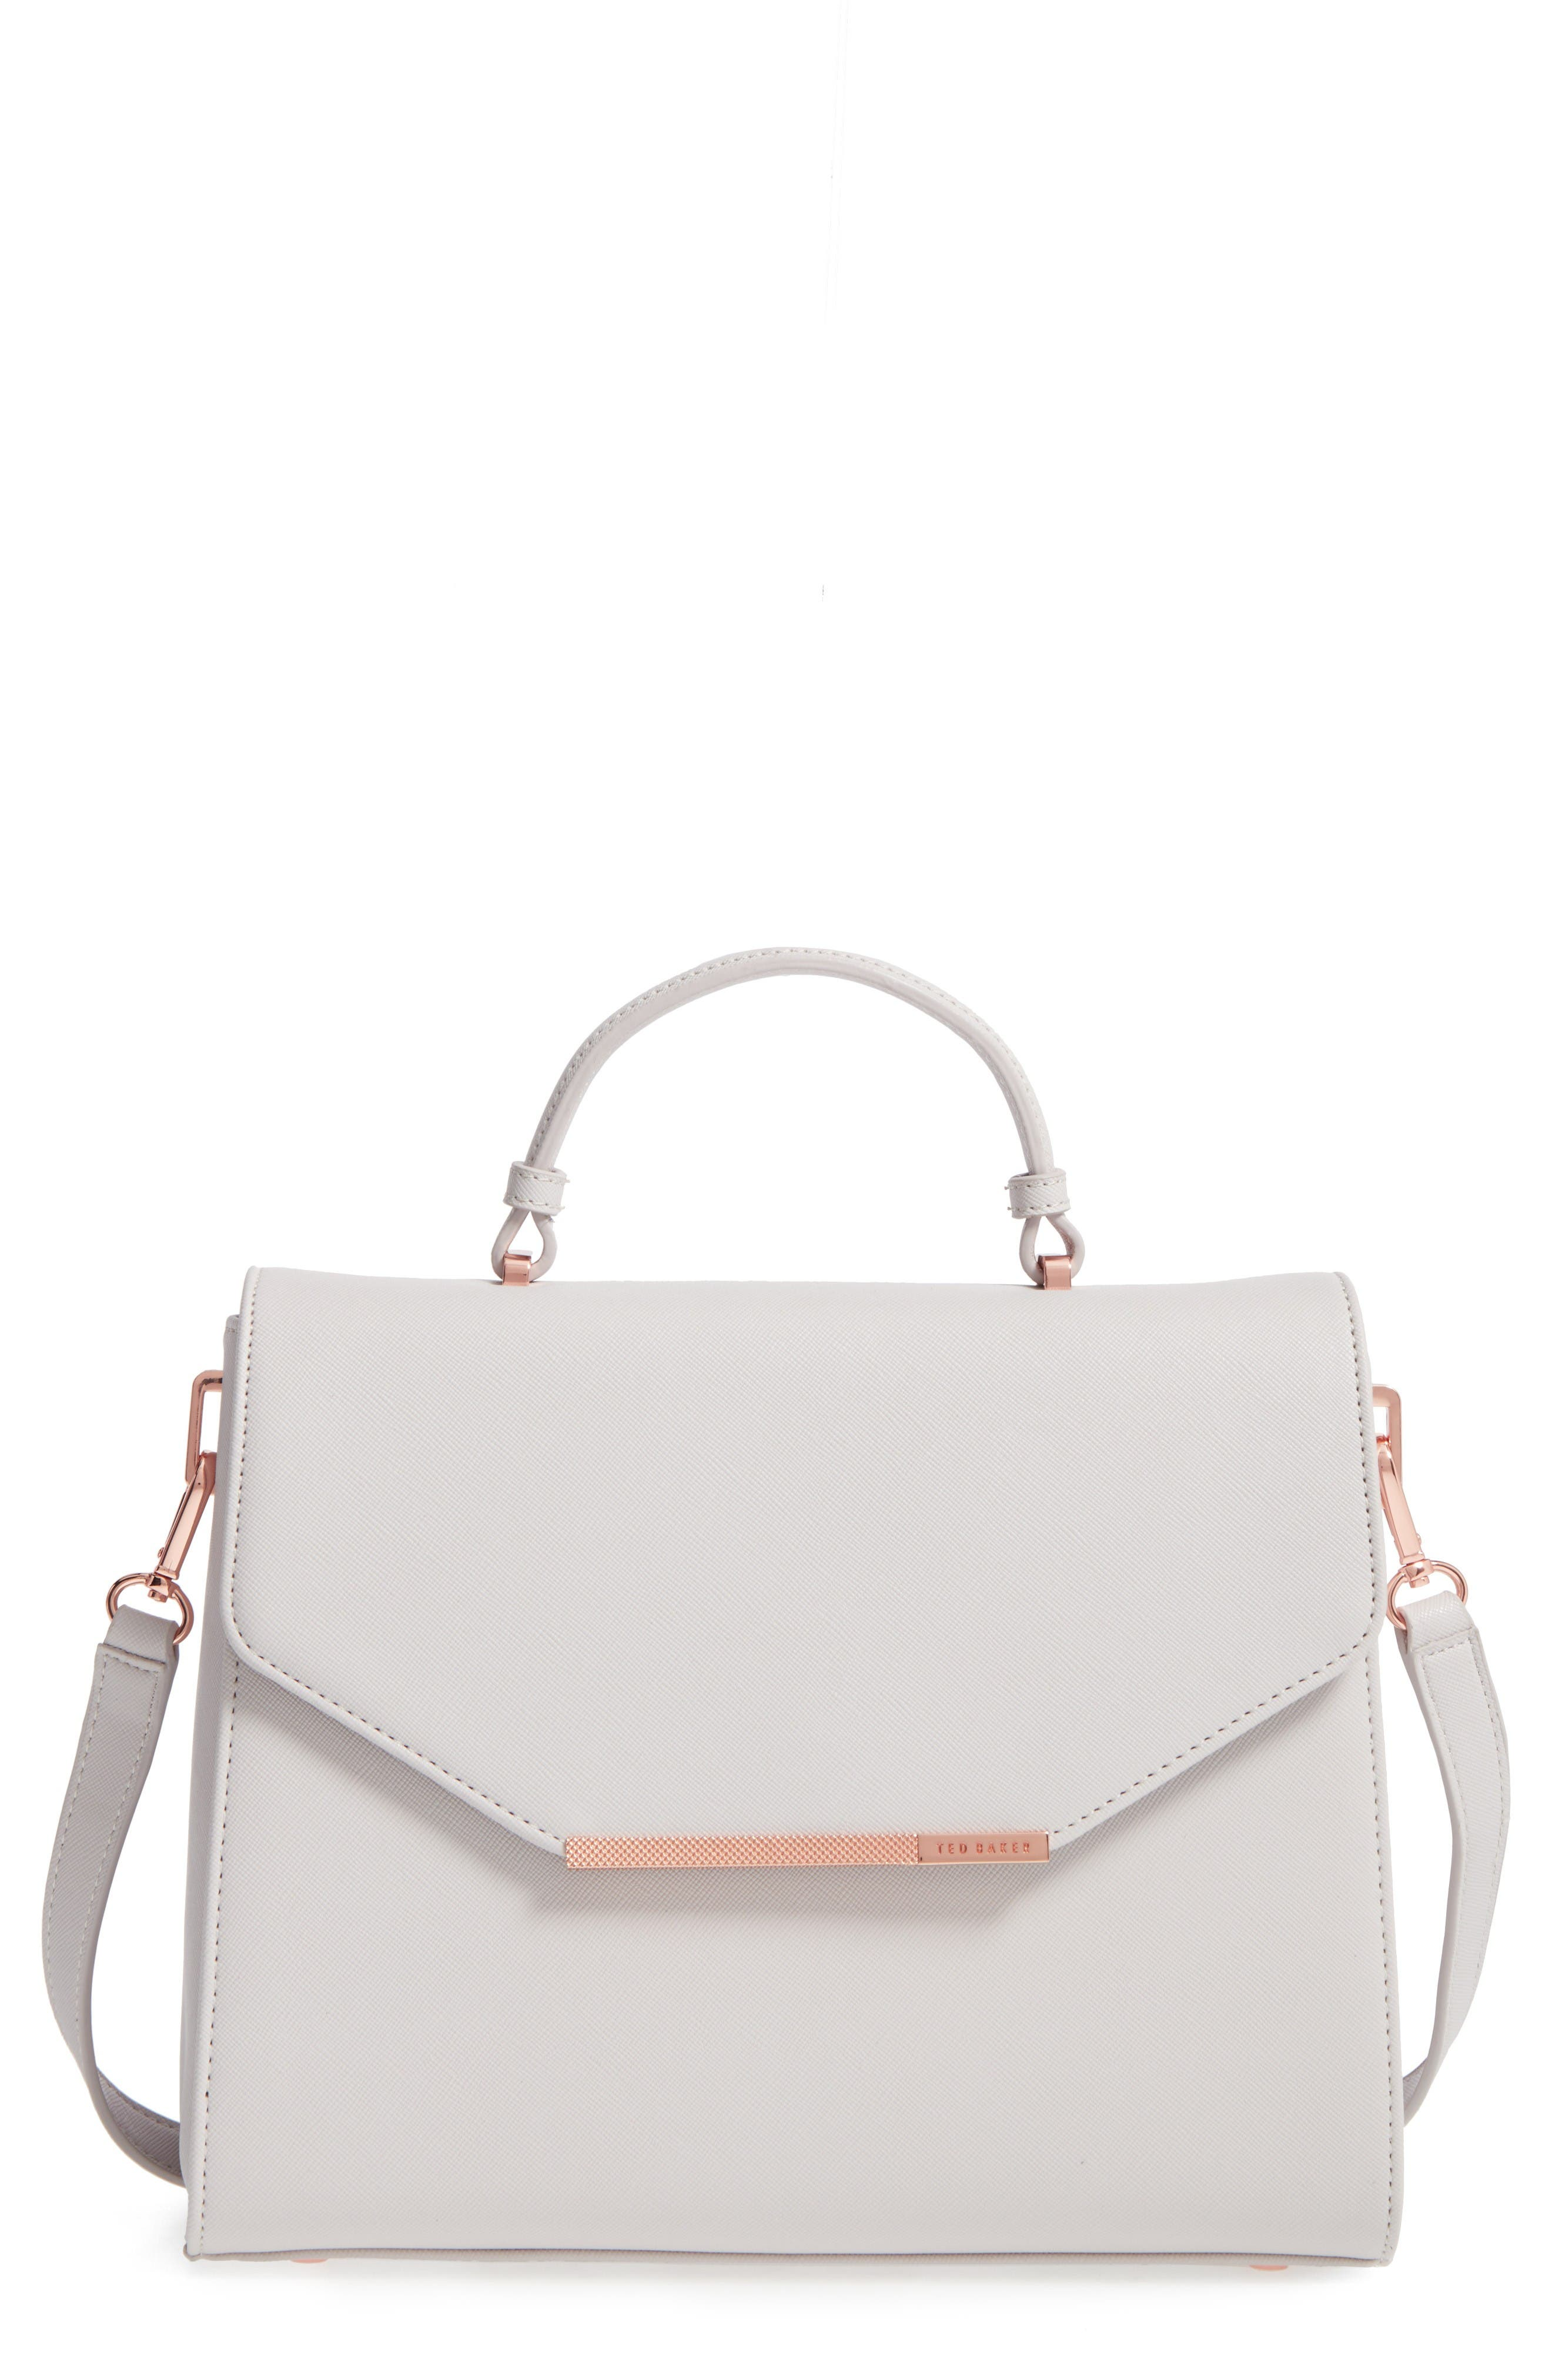 Alternate Image 1 Selected - Ted Baker London Large Faux Leather Top Handle Satchel